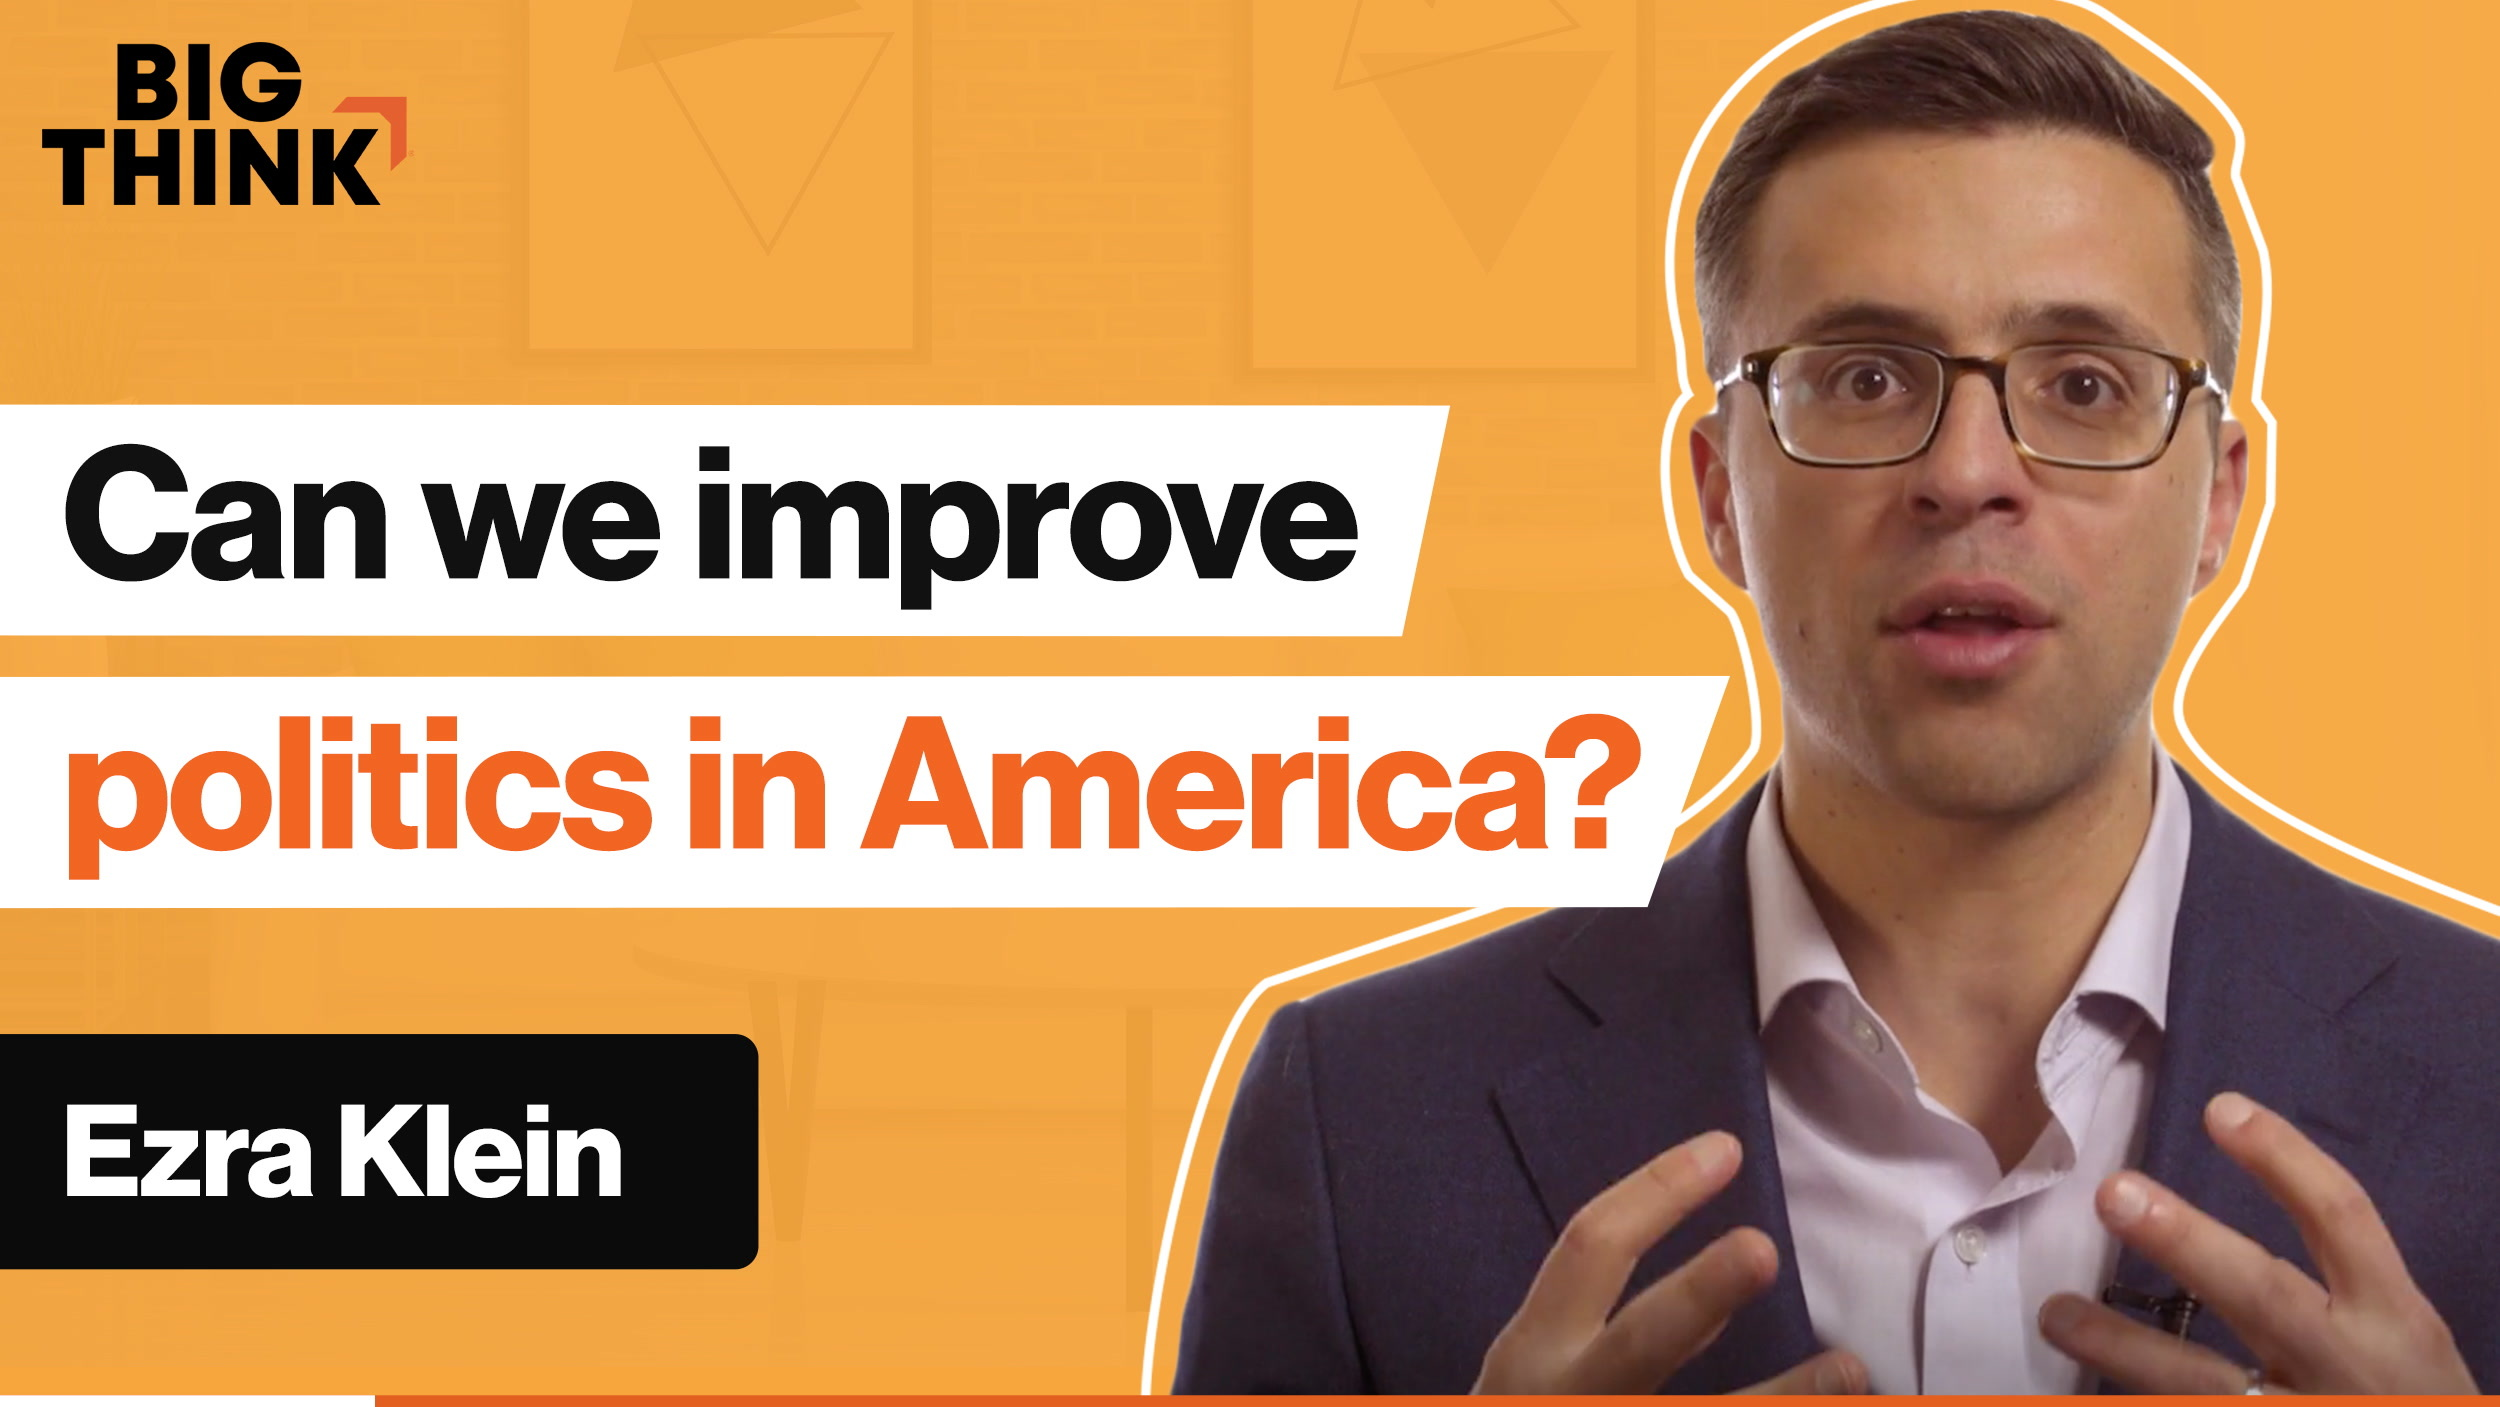 We can improve politics in America. Here's how.